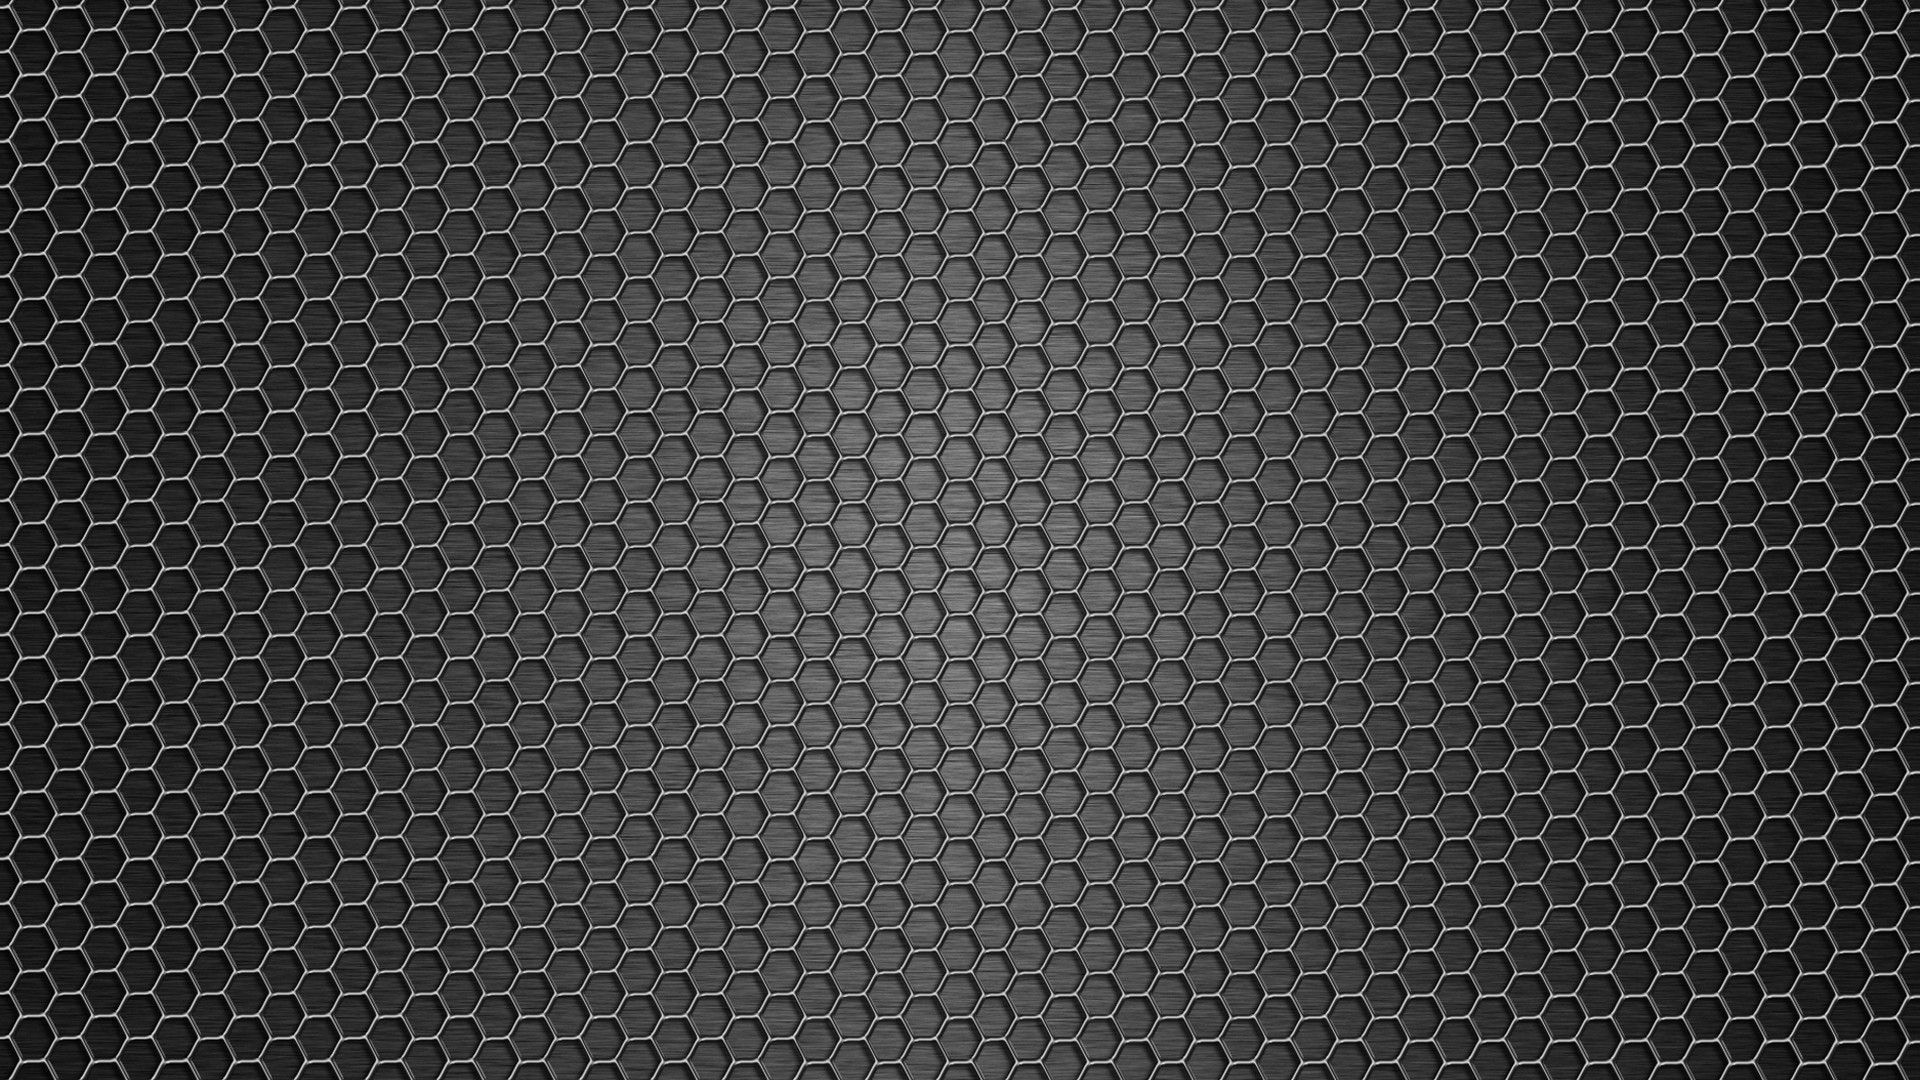 1920x1080 Wallpaper mesh dark background texture metal 1920x1080